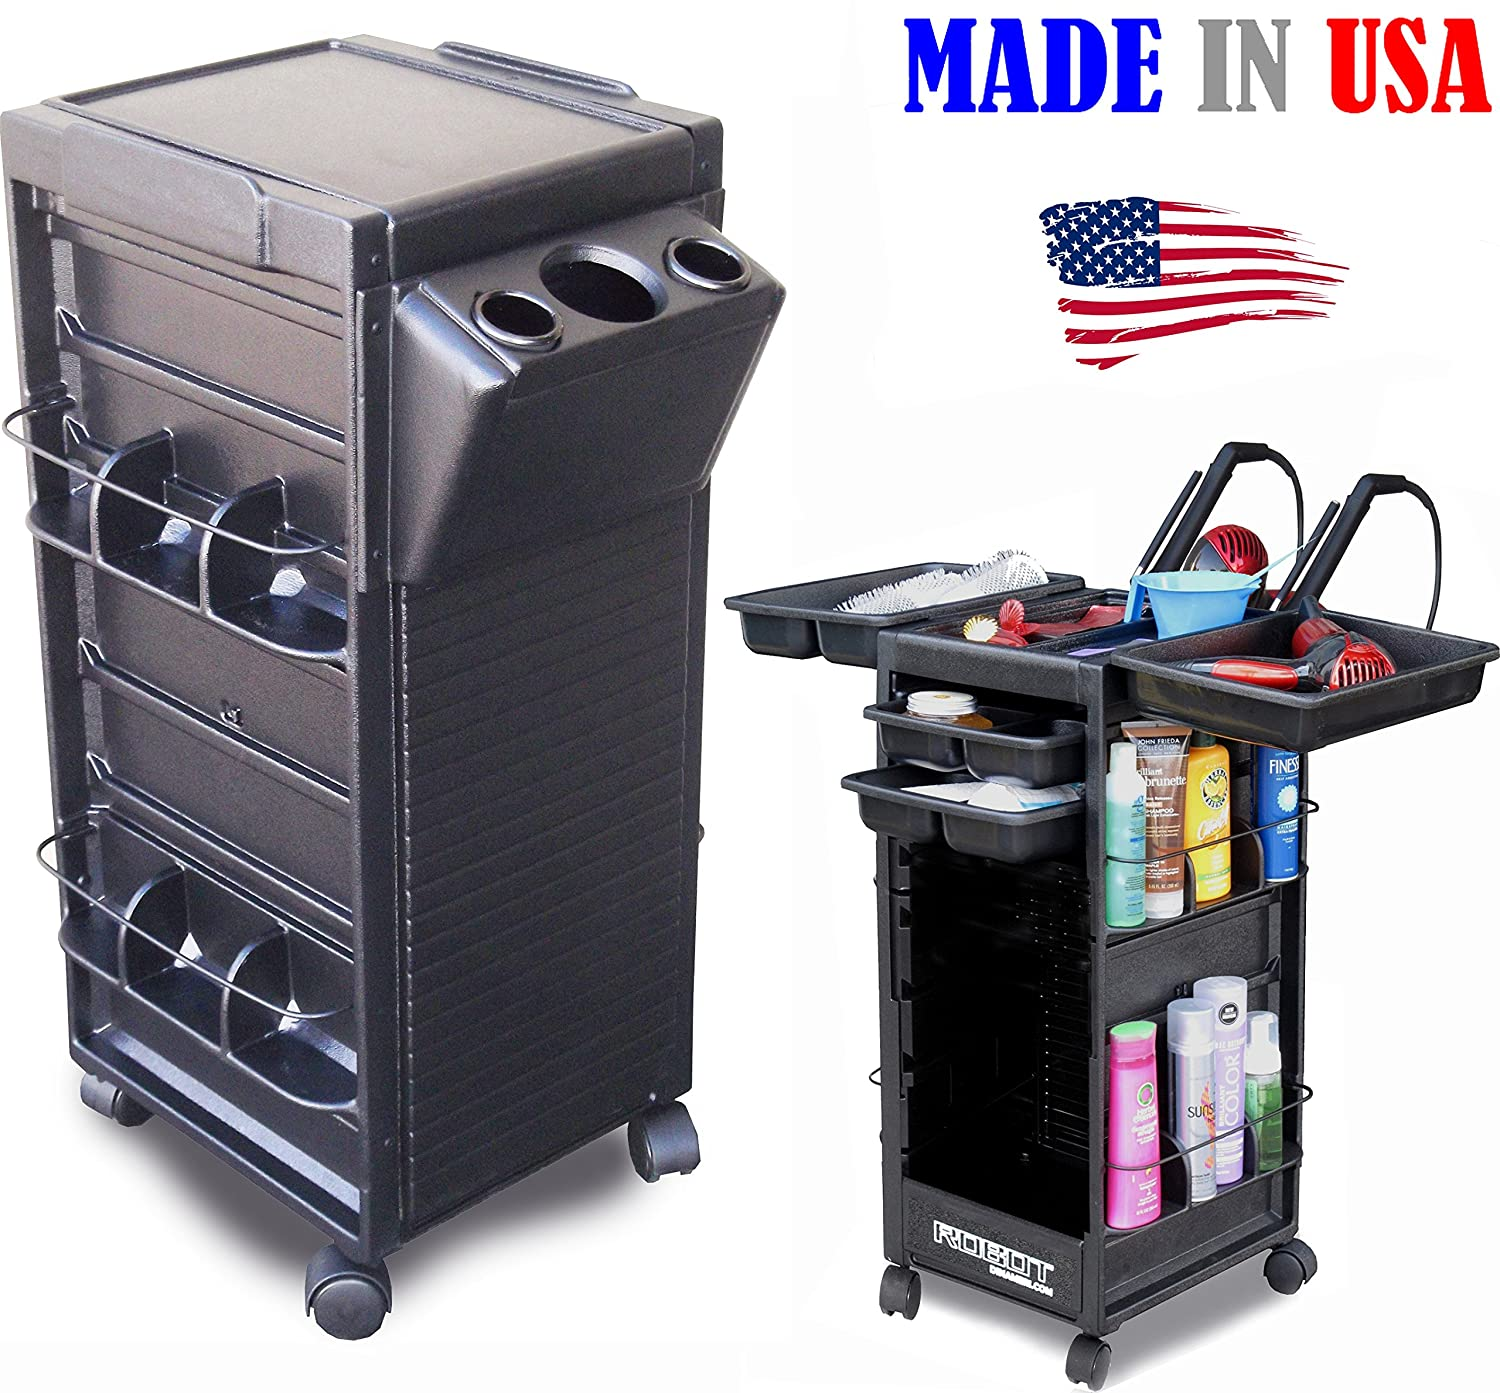 N20-H FF Salon Cart Rollabout Trolley NON LOCKABLE w/Tool Holder Made in USA by Dina Meri